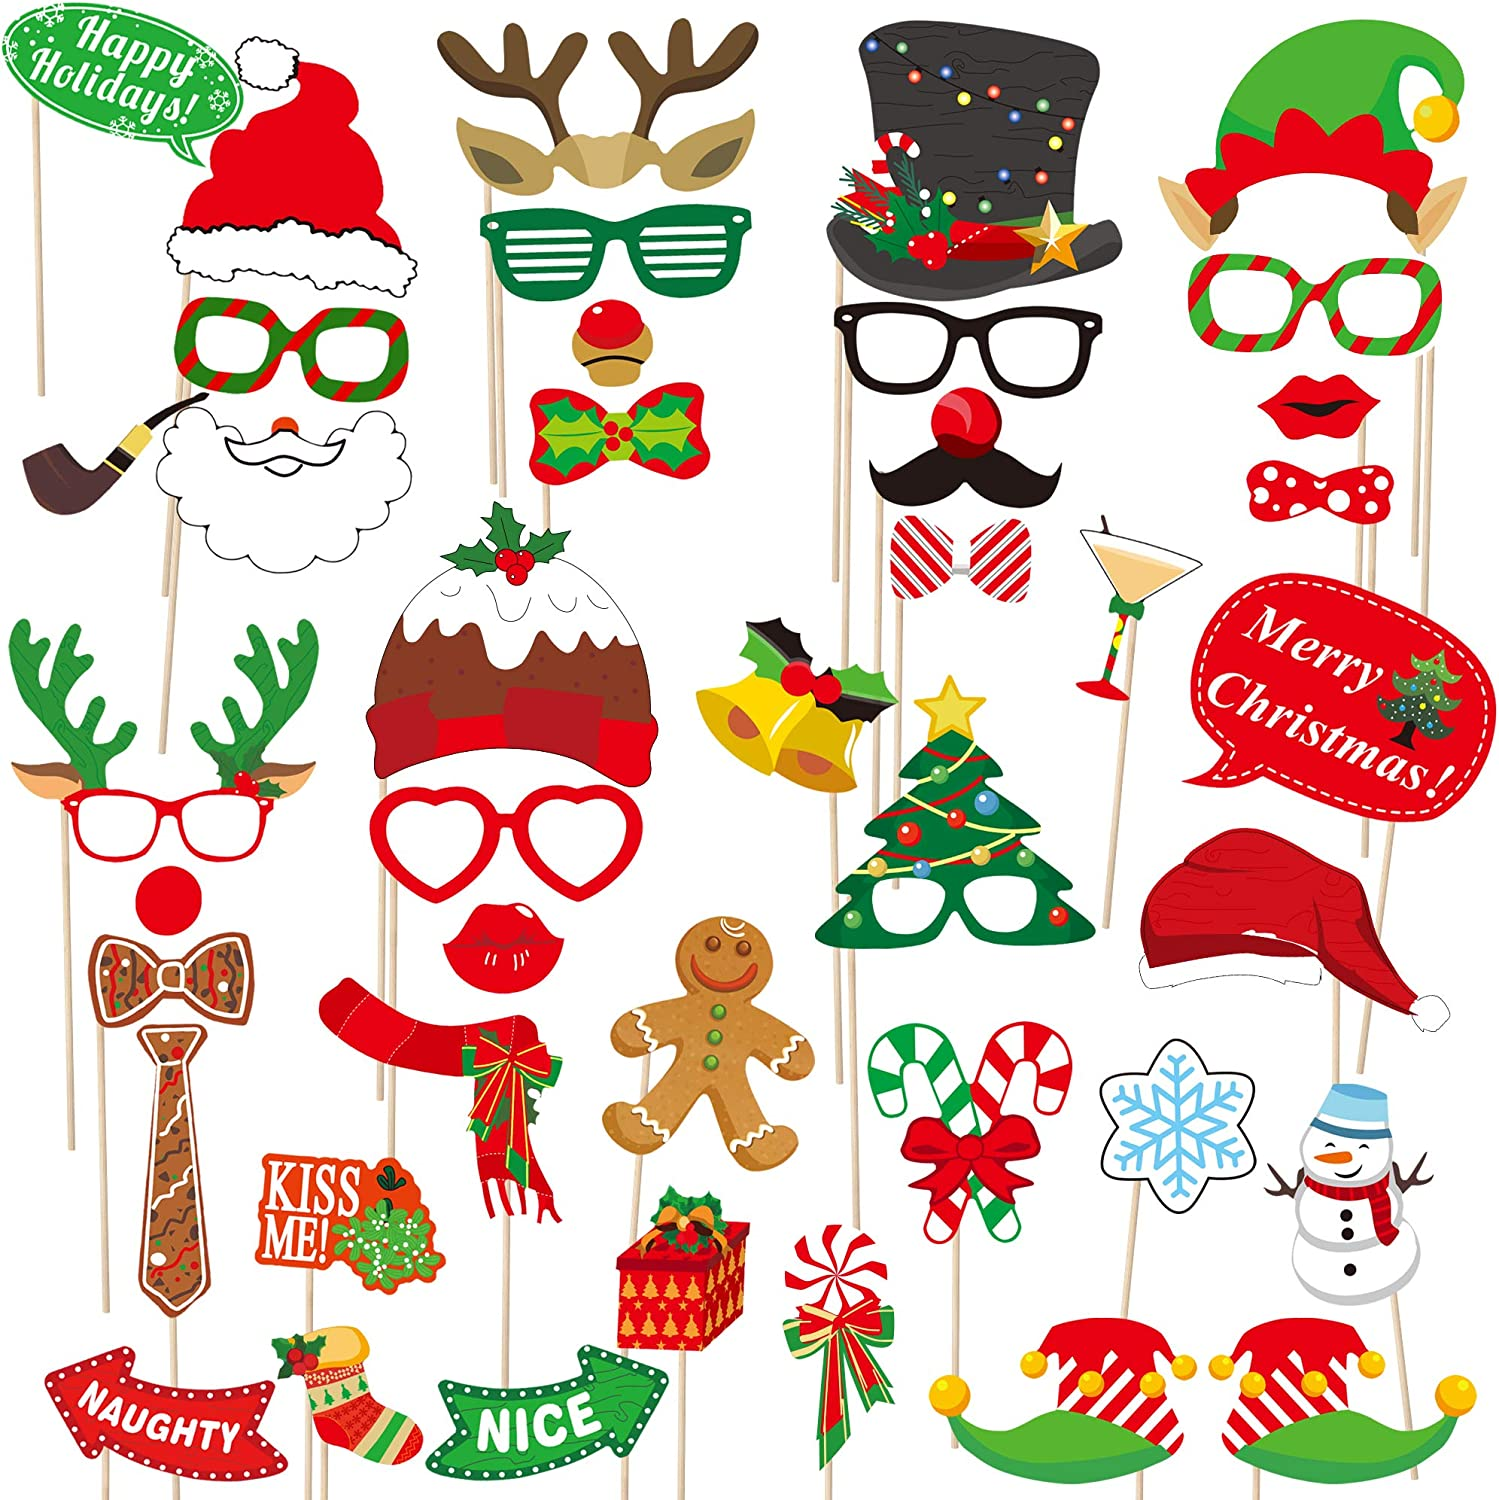 Christmas Gathering 2020 Funny Amazon.com: 2020 Christmas Photo Booth Props – 42 Pack DIY Xmas